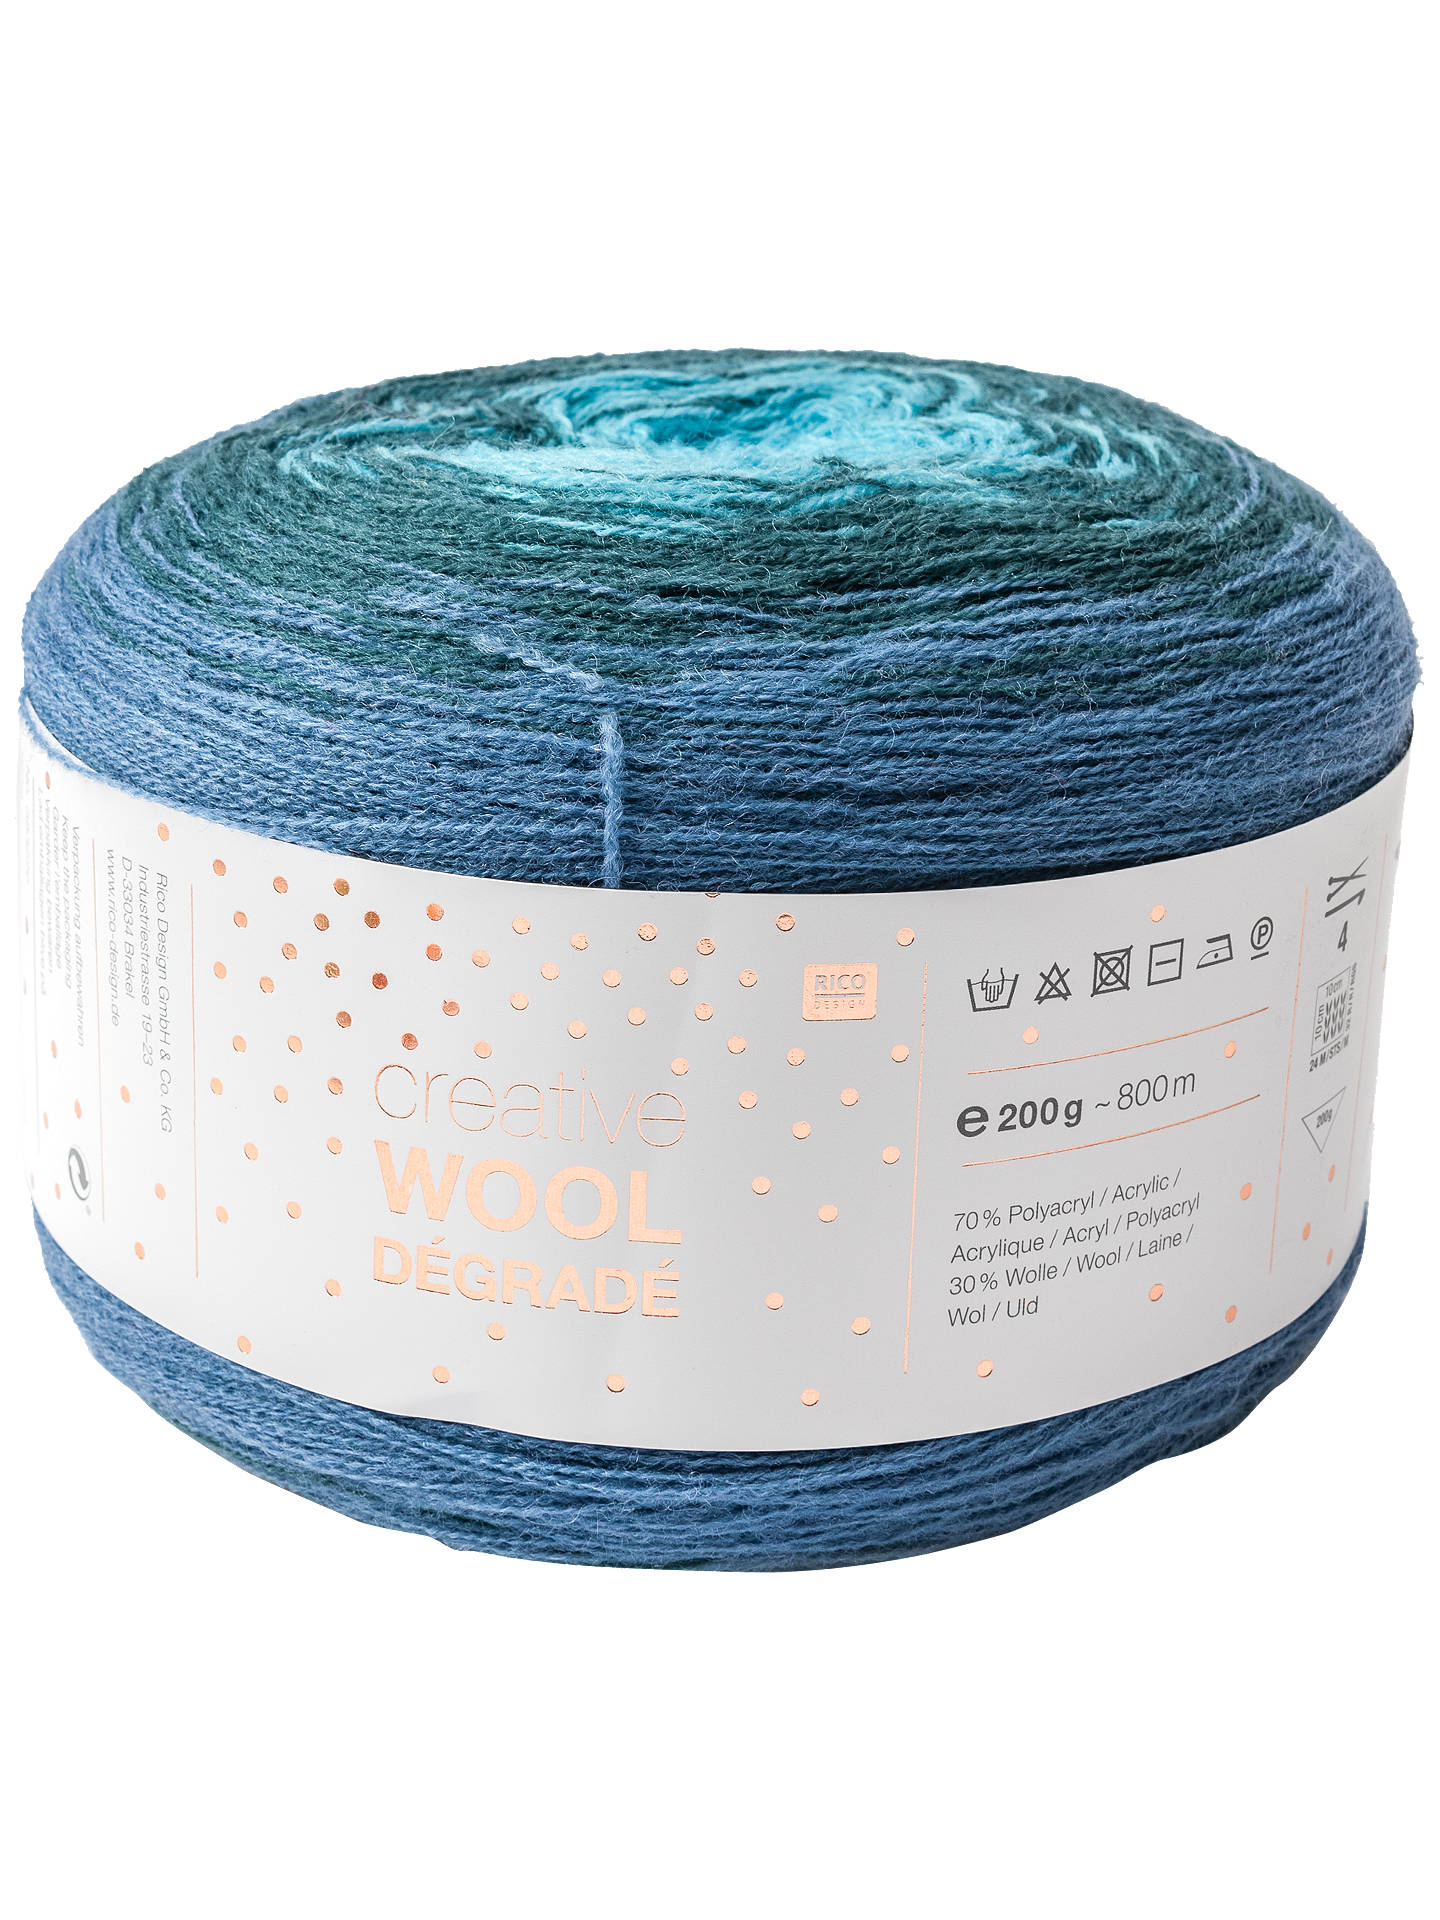 BuyRico Creative Wool Degrade 4 Ply Yarn, 200g, Blue Online at johnlewis.com